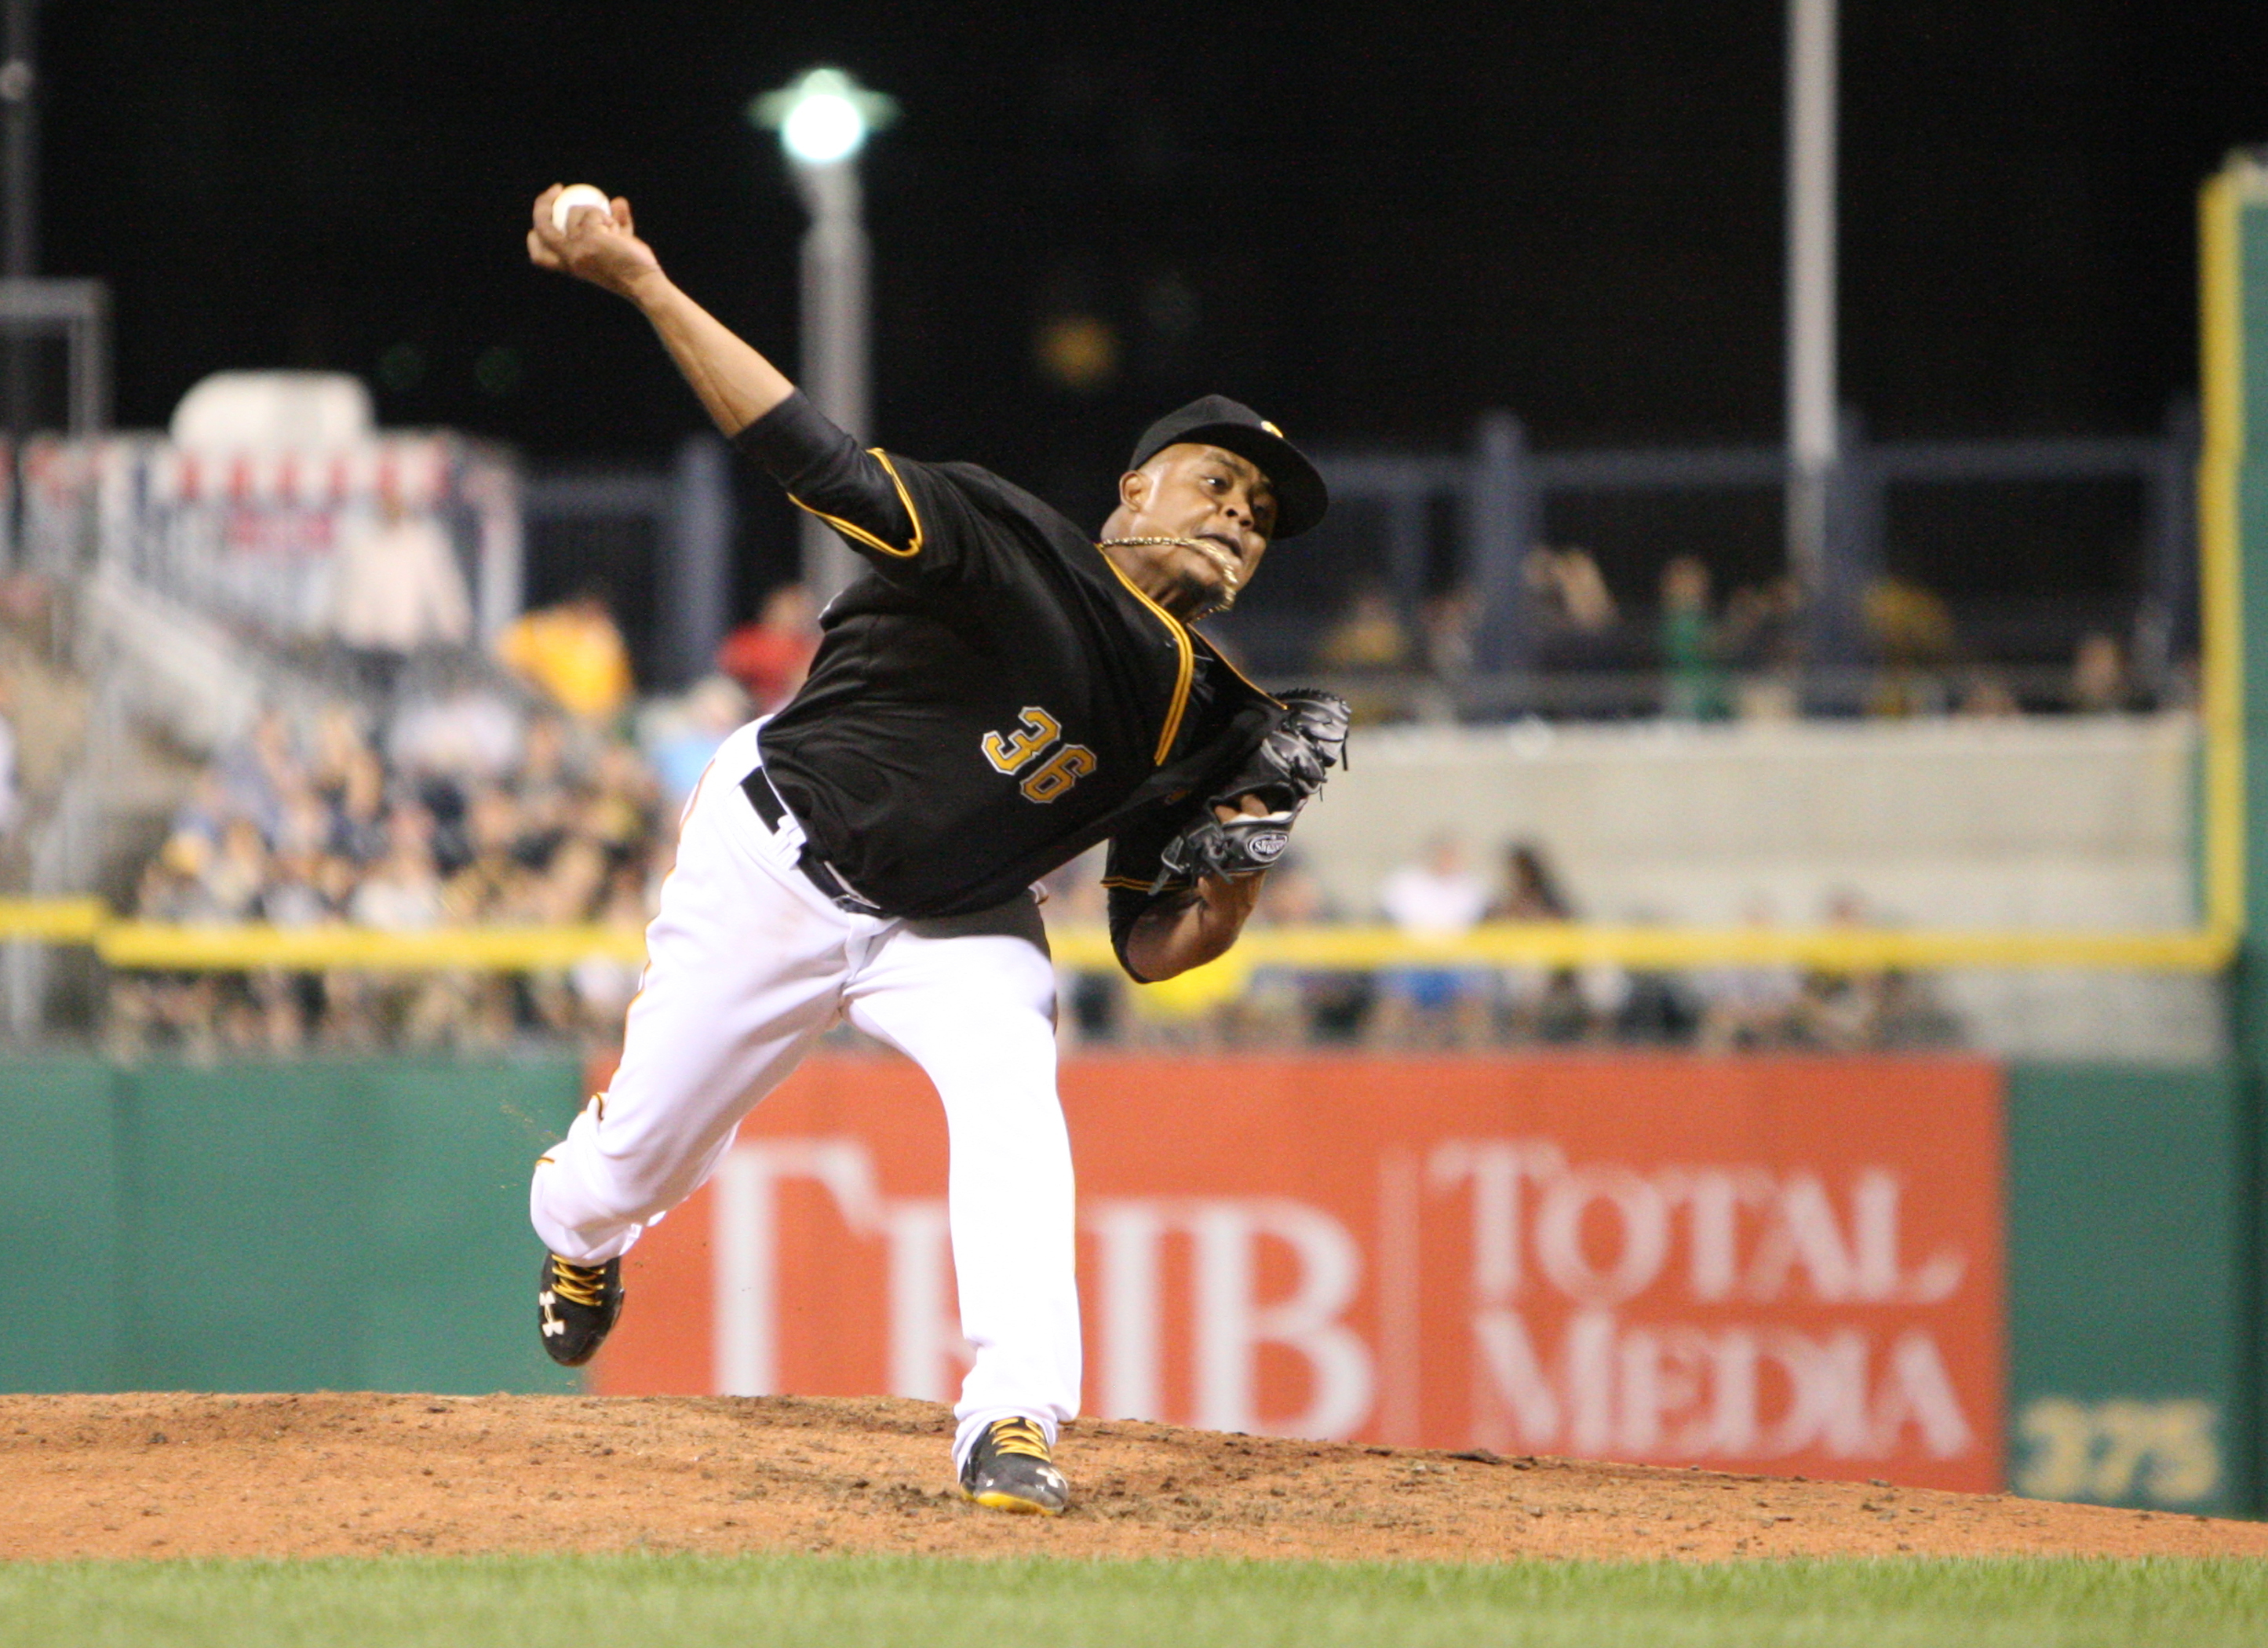 First Pitch: Should the Pirates Continue Going With Reclamation Starting Pitchers?